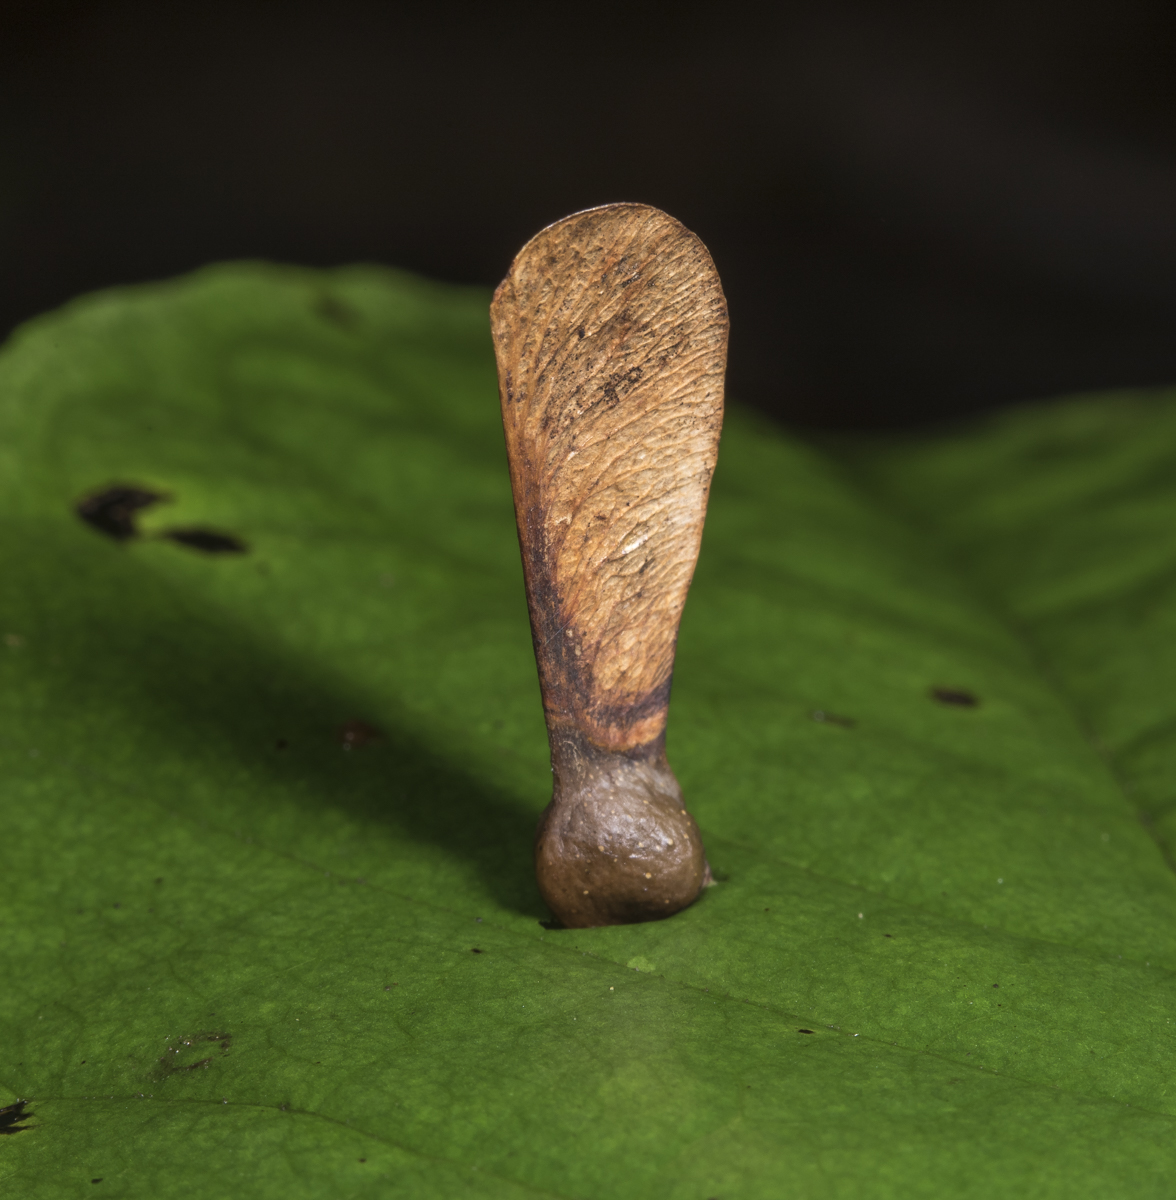 maple seed embedded in pawpaw leaf